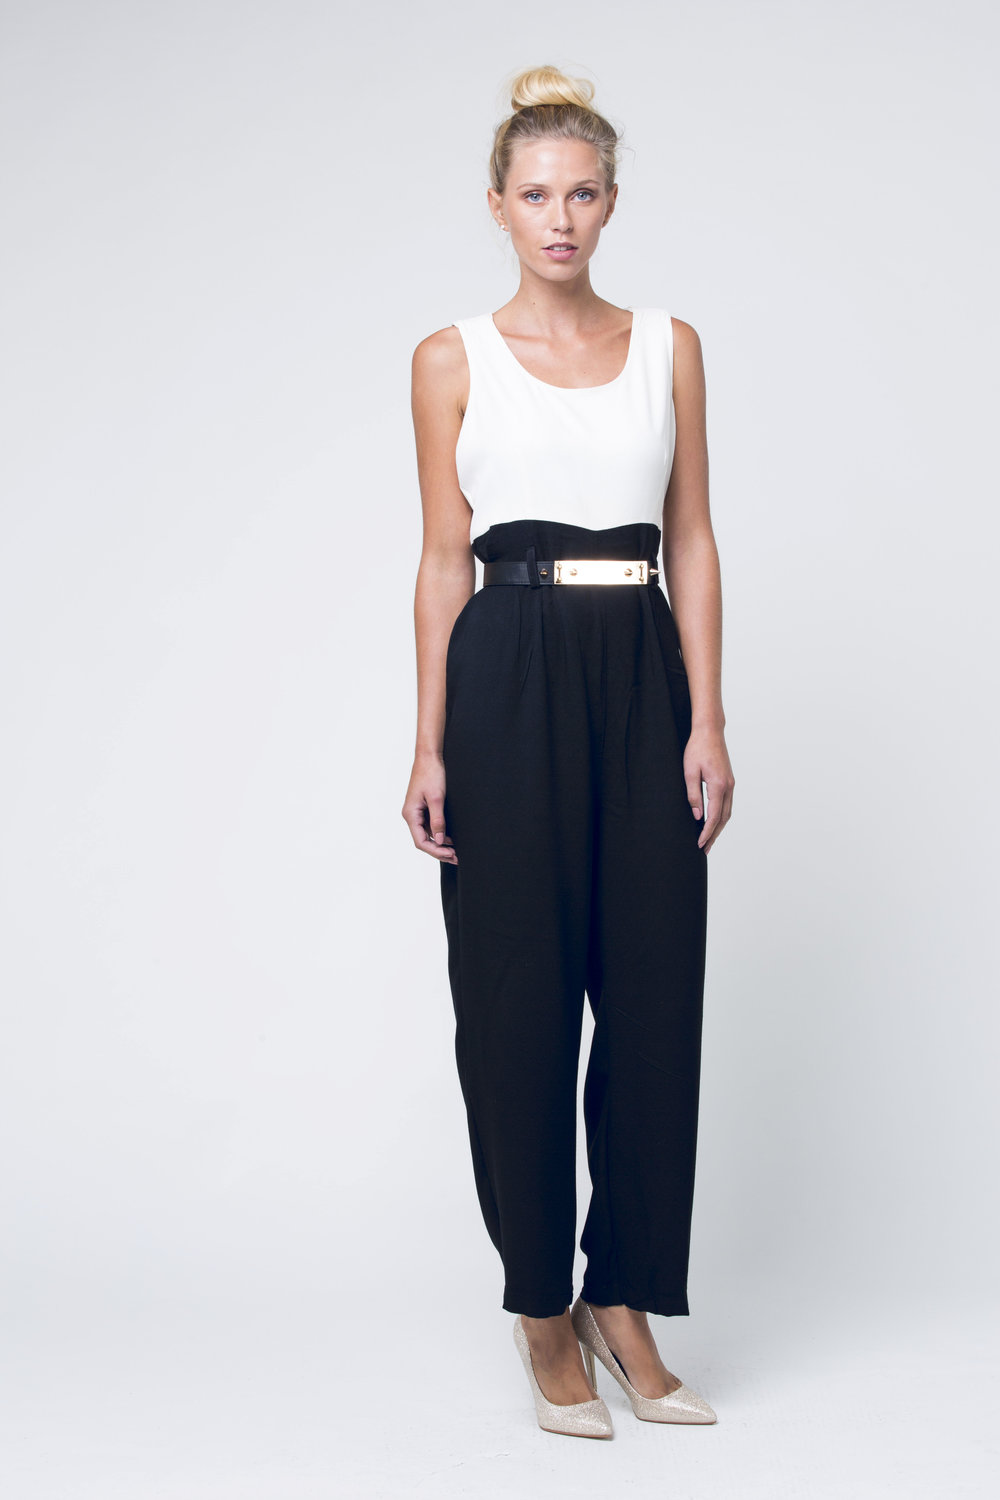 black and white jumpsuit front.jpg